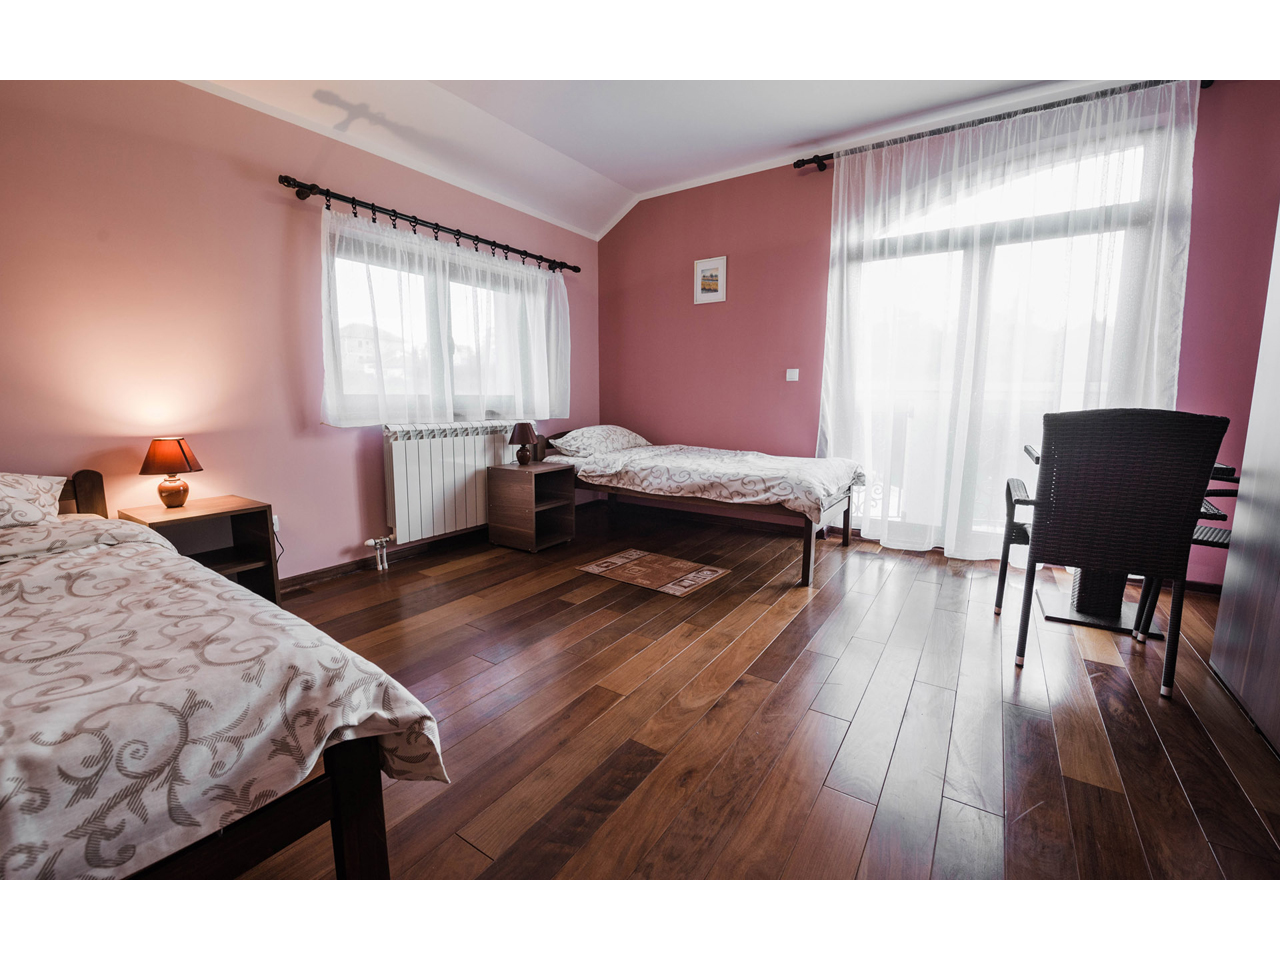 HOME FOR THE ELDERLY  RUZIN DOM Homes and care for the elderly Beograd